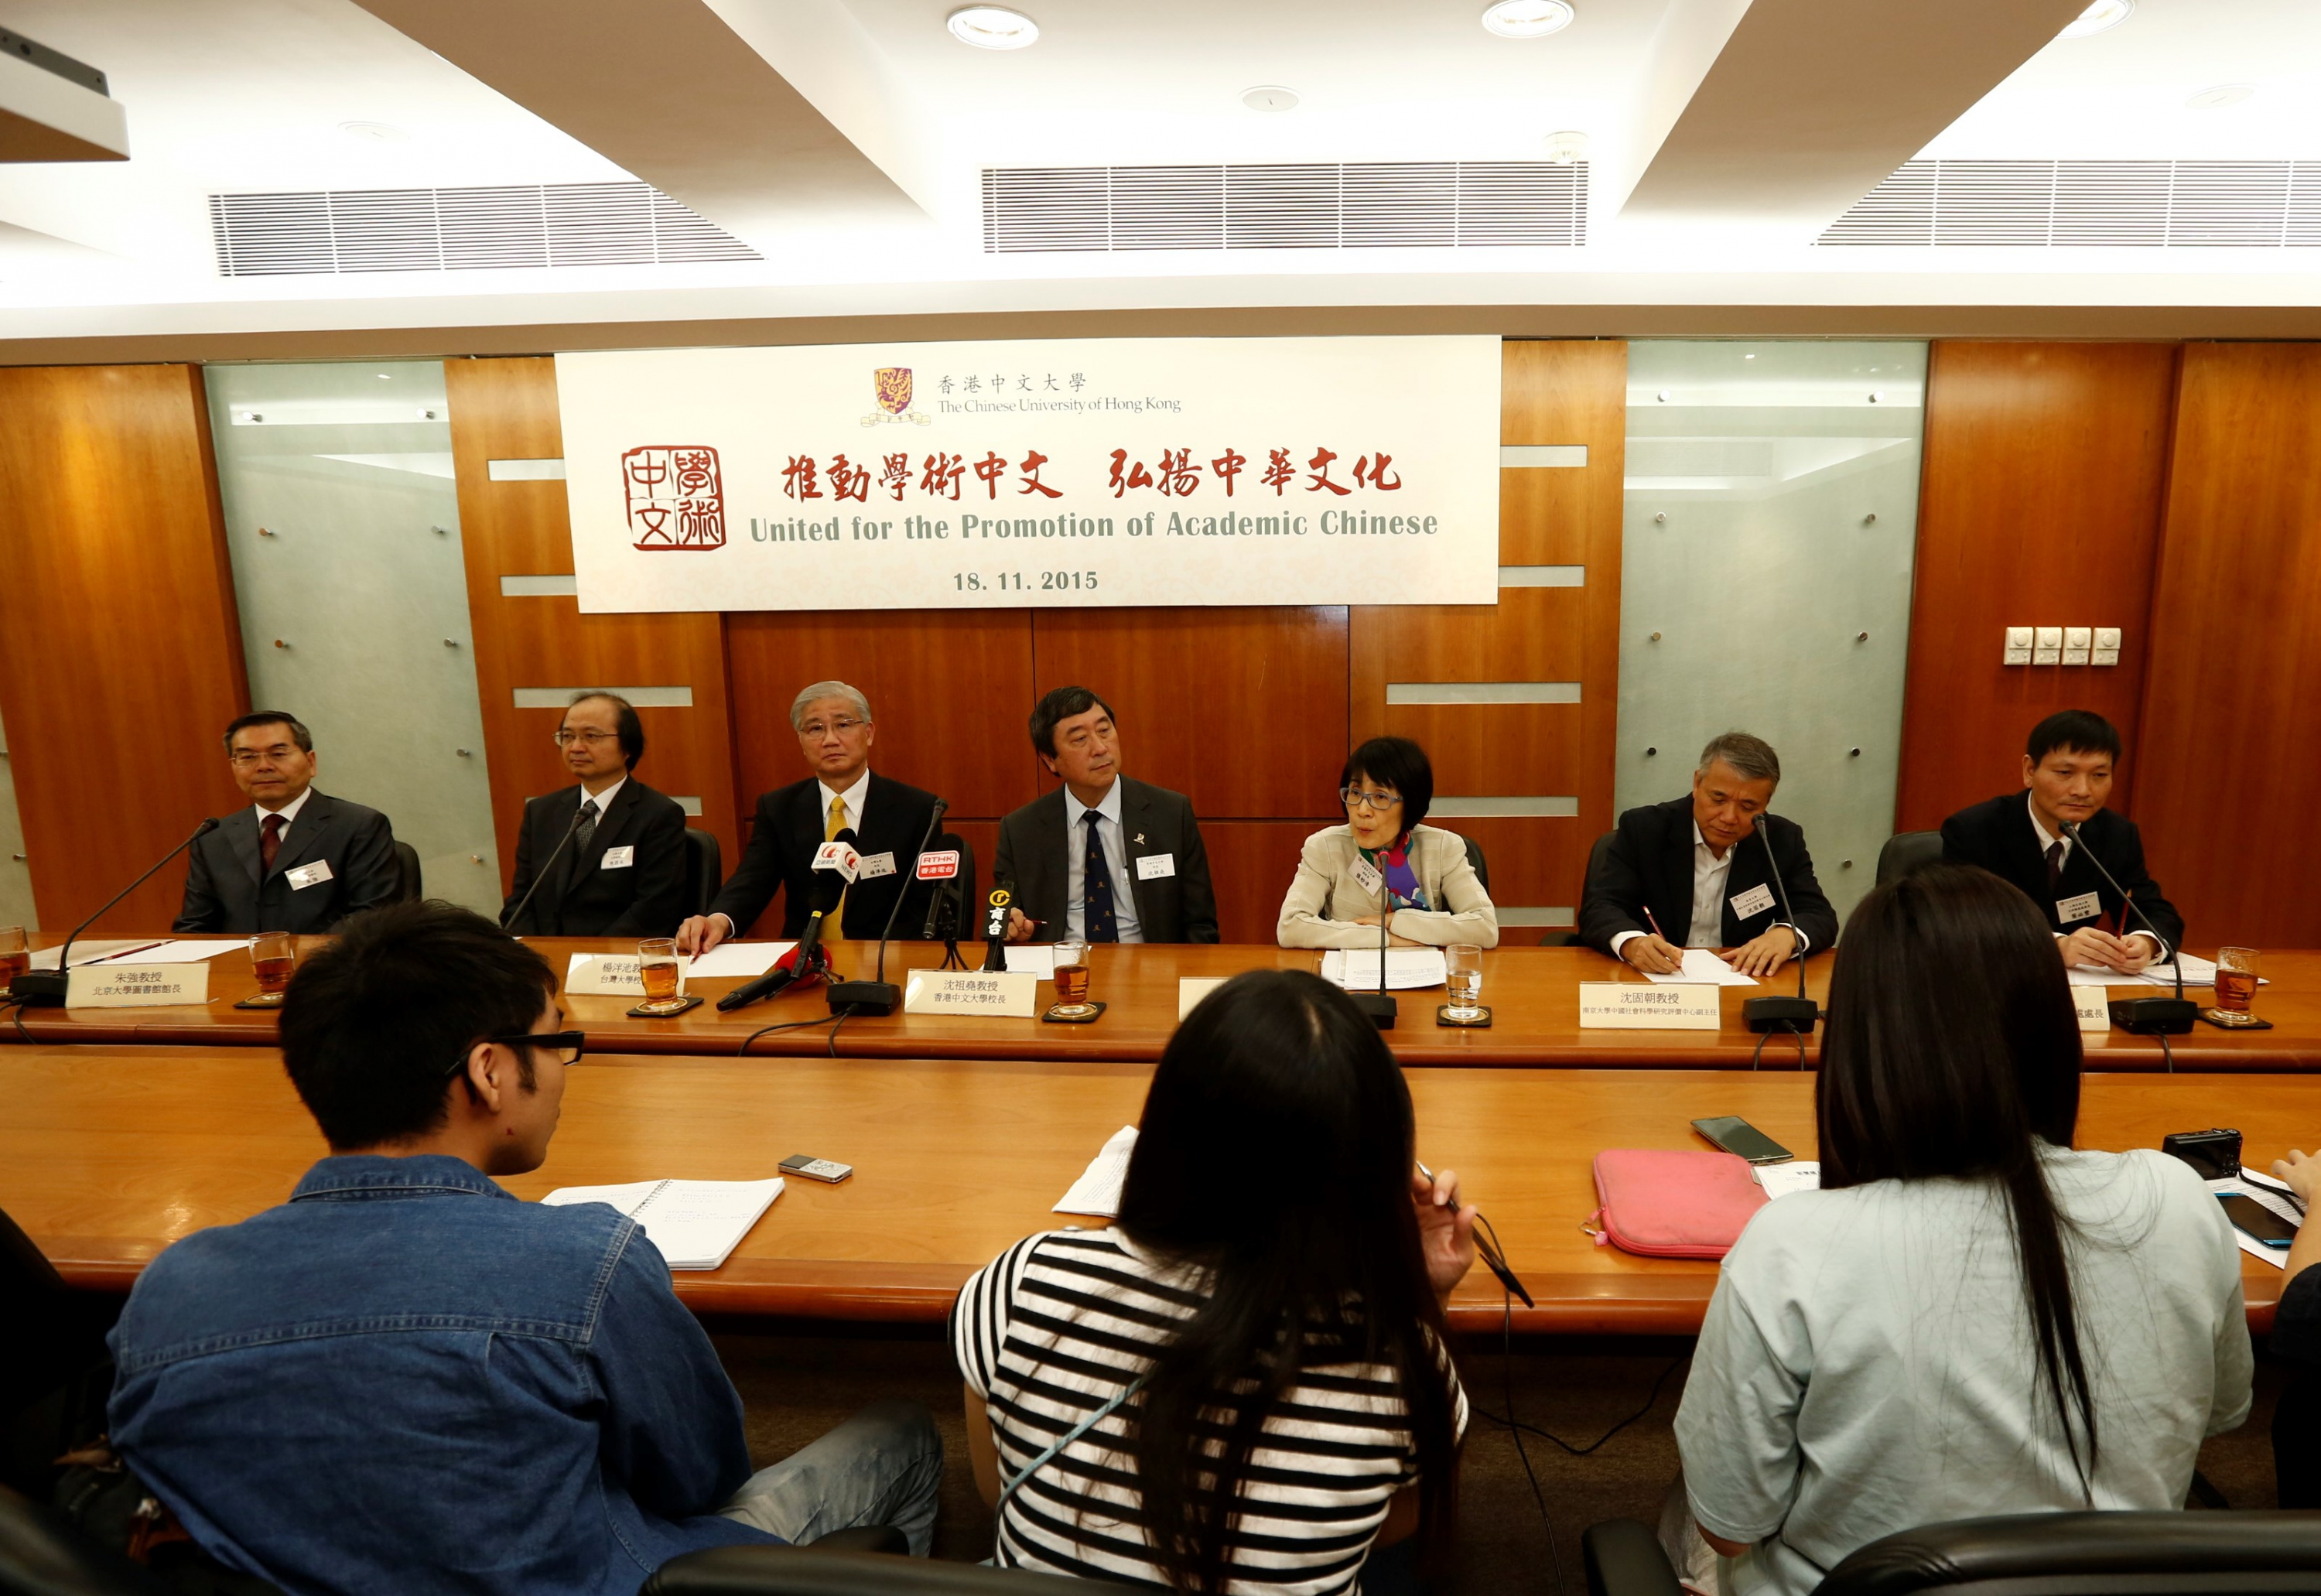 (From left) Prof. Zhu Qiang, University Librarian of PKU; Prof. Chen Jo-shui, Dean, College of Liberal Arts, NTU; Prof. Yang Pan-Chyr, President of NTU; Prof. Joseph J.Y. Sung, Vice-Chancellor of CUHK; Prof. Fanny M.C. Cheung, Pro-Vice-Chancellor of CUHK; Prof. Shen Gu-chao, Deputy Director, Center for Chinese Social Sciences Research and Assessment, NJU; and Prof. Ye Bi-feng, The Chief of Division for Development of Liberal Arts, SJTU, receive questions from the media.